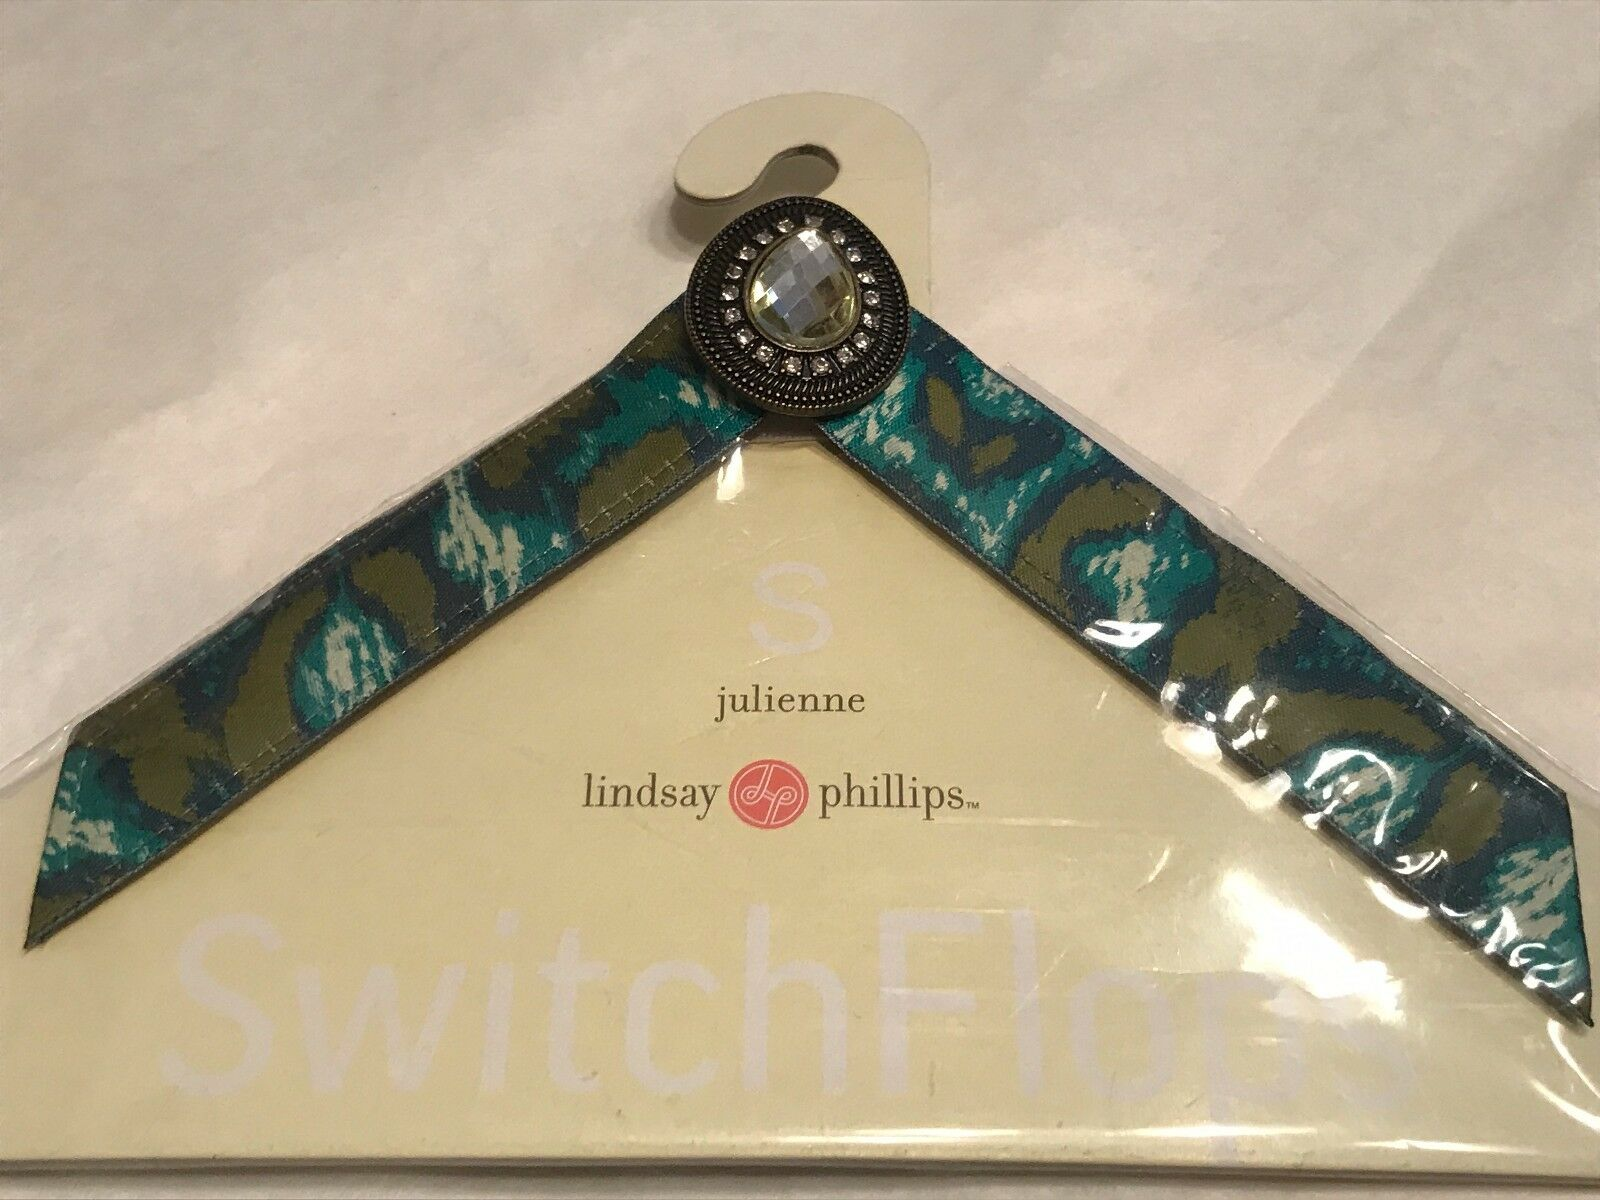 New Lindsay Phillips SwitchFlops Julienne Straps turquoise multi small 5-6